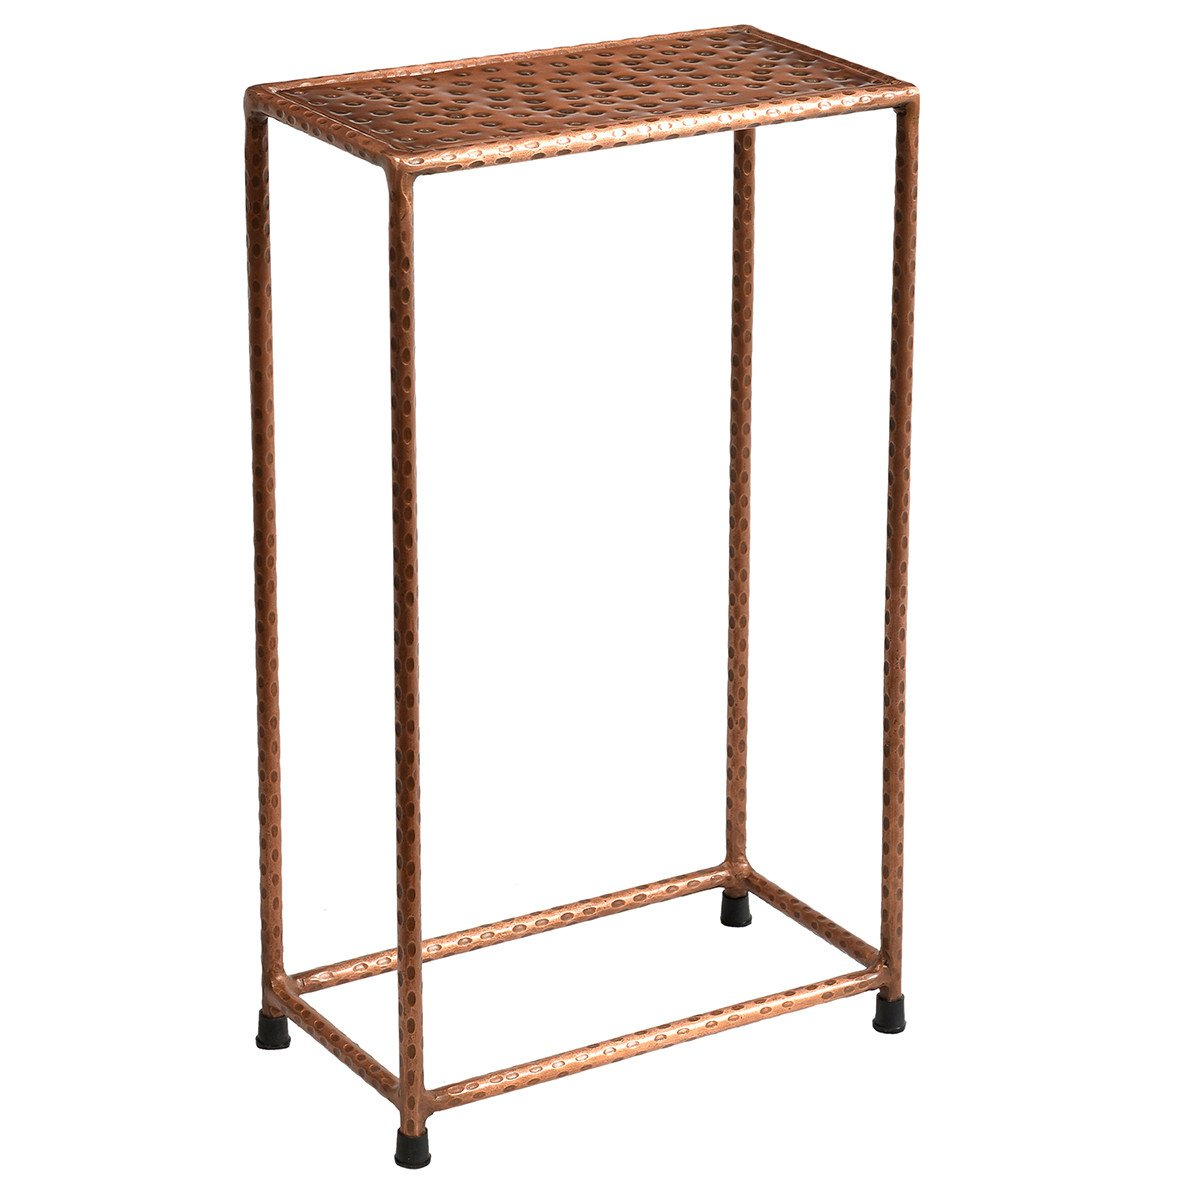 little hammered iron side table copper wrightwood furniture gold accent magazine ikea plastic storage boxes with wheels end tables glass tops ethan allen drop leaf coffee black